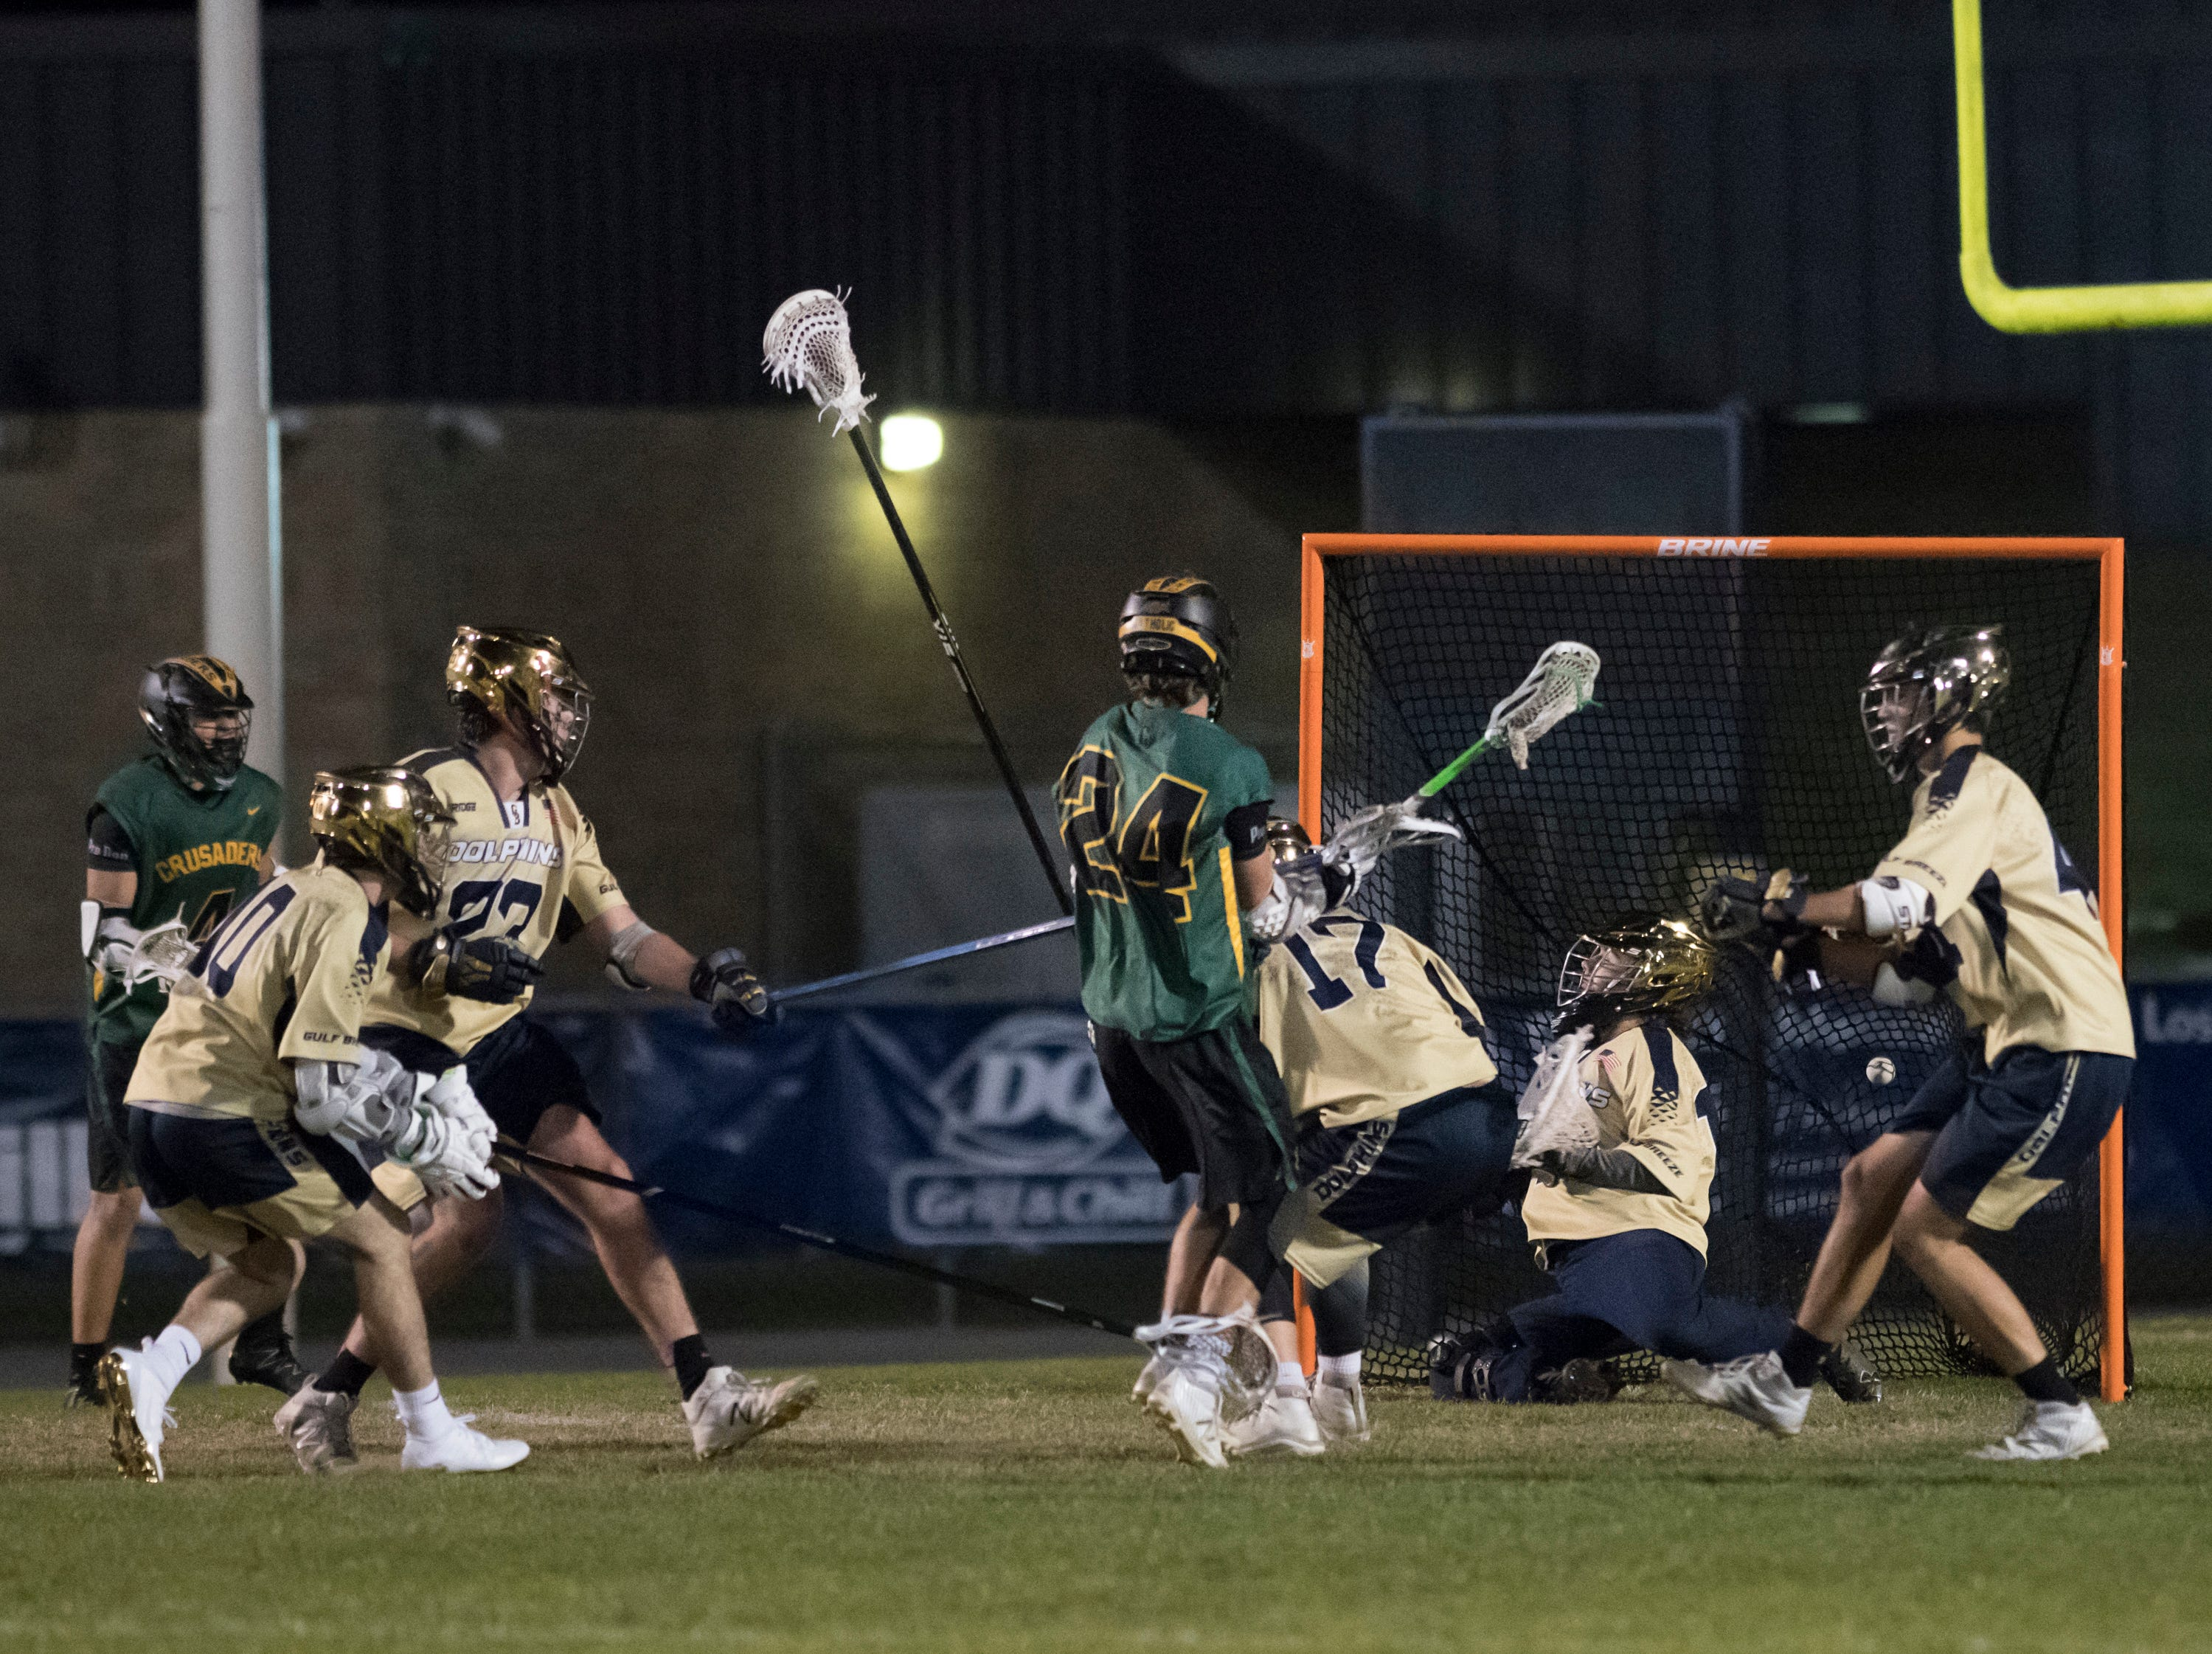 William Butler (24) watches his shot get past goalie Garrison Story (19) as the Crusaders tie the score at 9-9 during the Catholic vs. Gulf Breeze boys lacrosse game at Gulf Breeze High School on Wednesday, March 6, 2019.